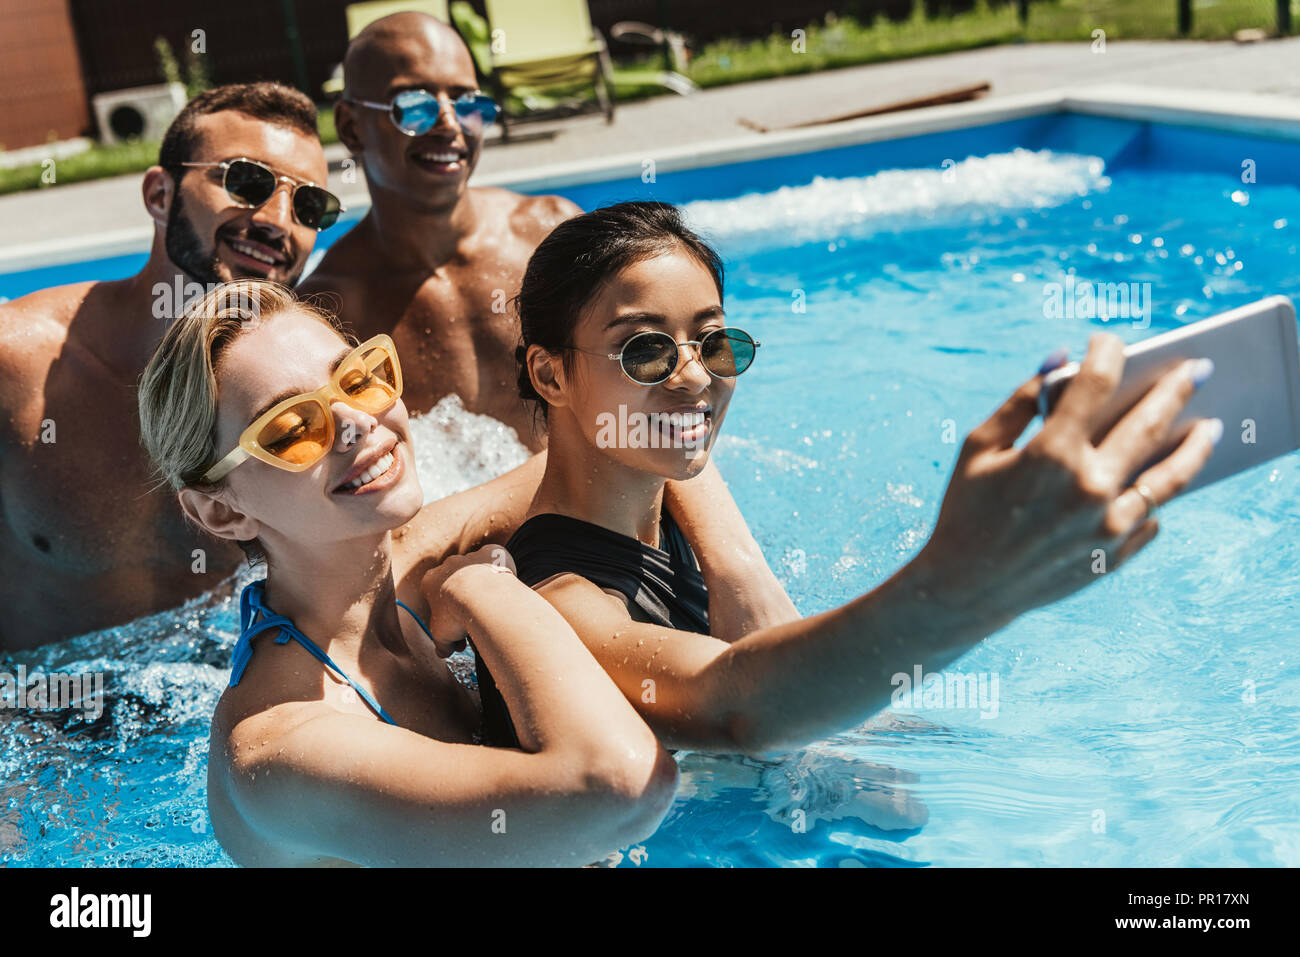 multicultural couples in sunglasses taking selfie on smartphone in swimming pool - Stock Image